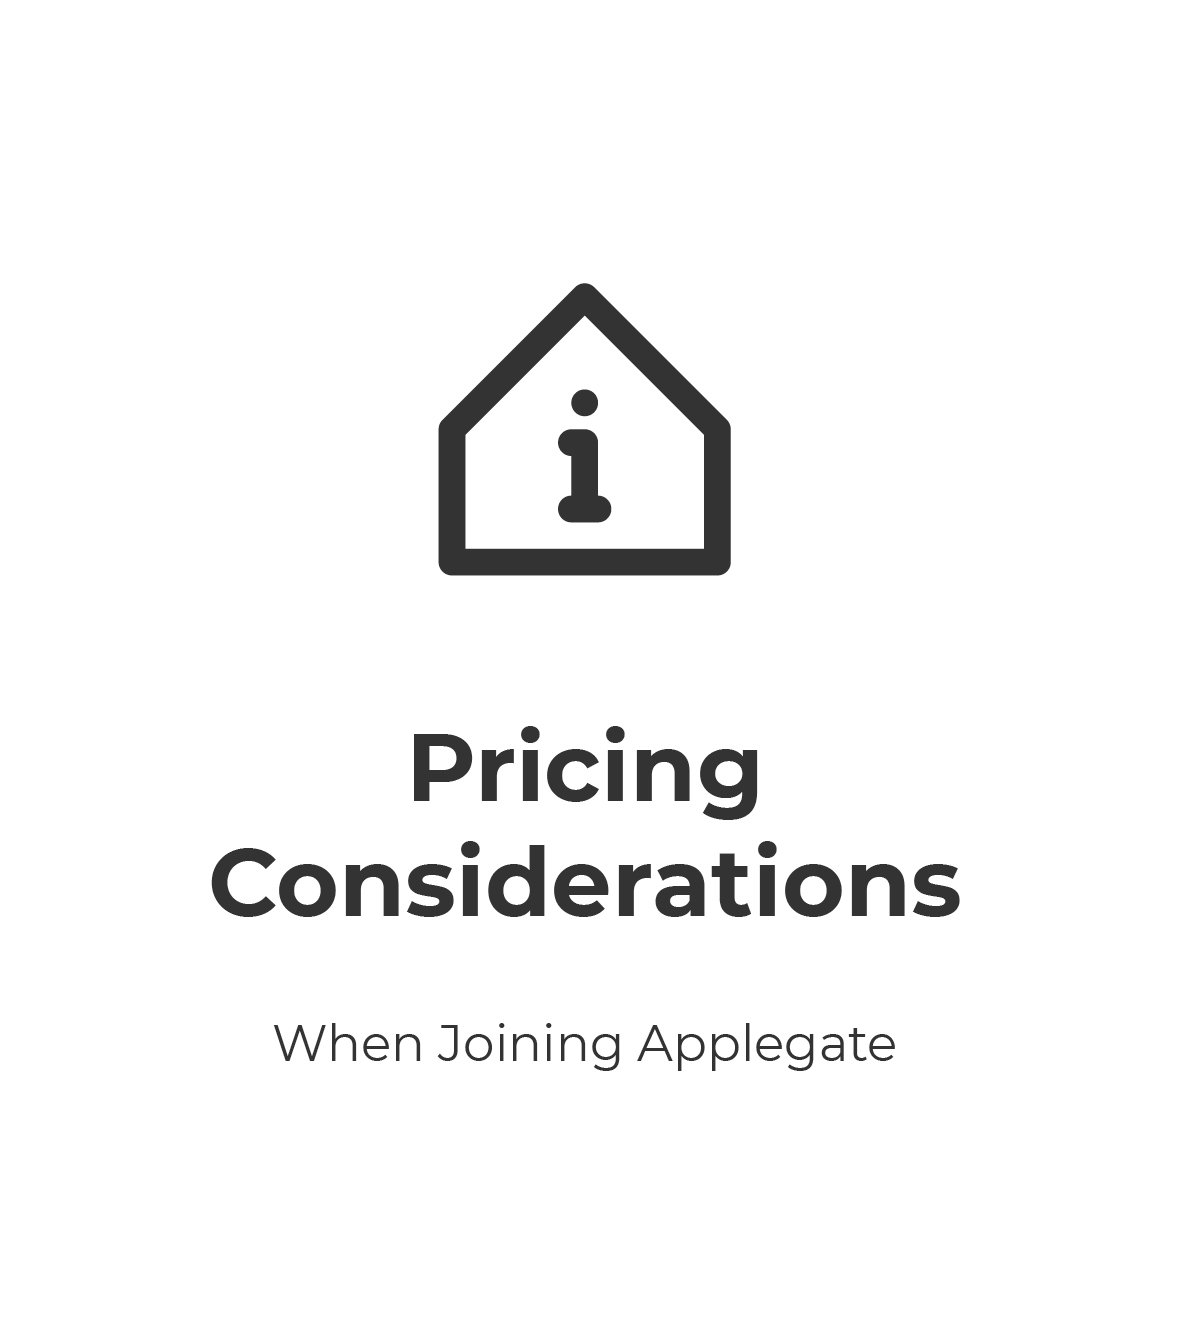 Pricing Considerations White